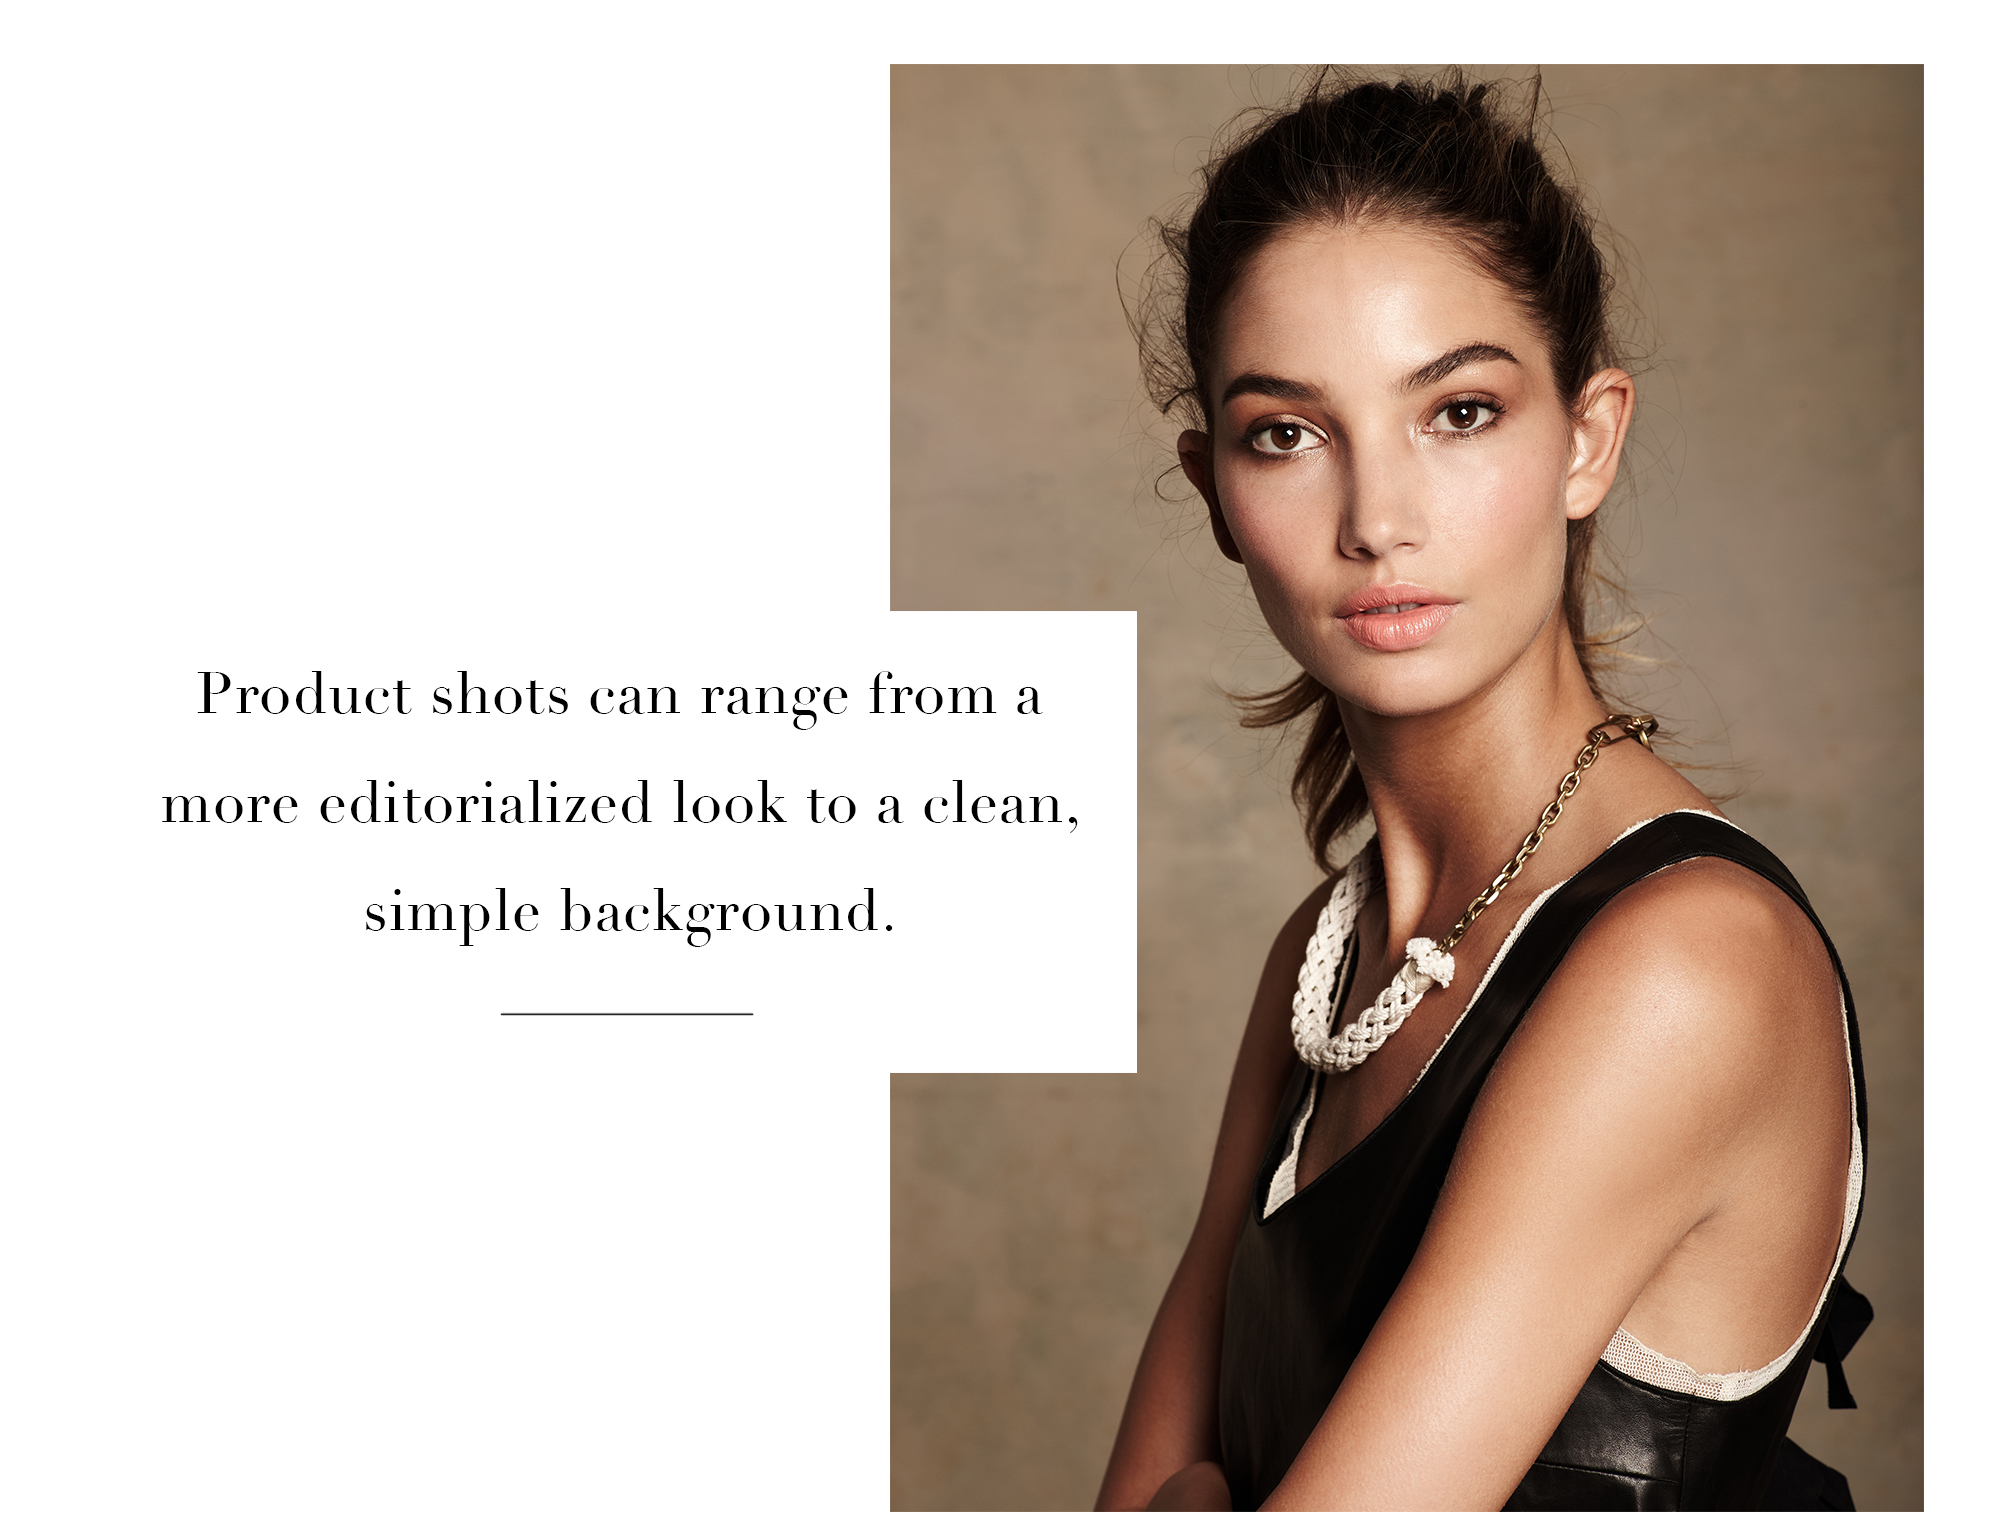 editorialized product photography for vogue magazine of model with leather top and necklace shot on a canvas background